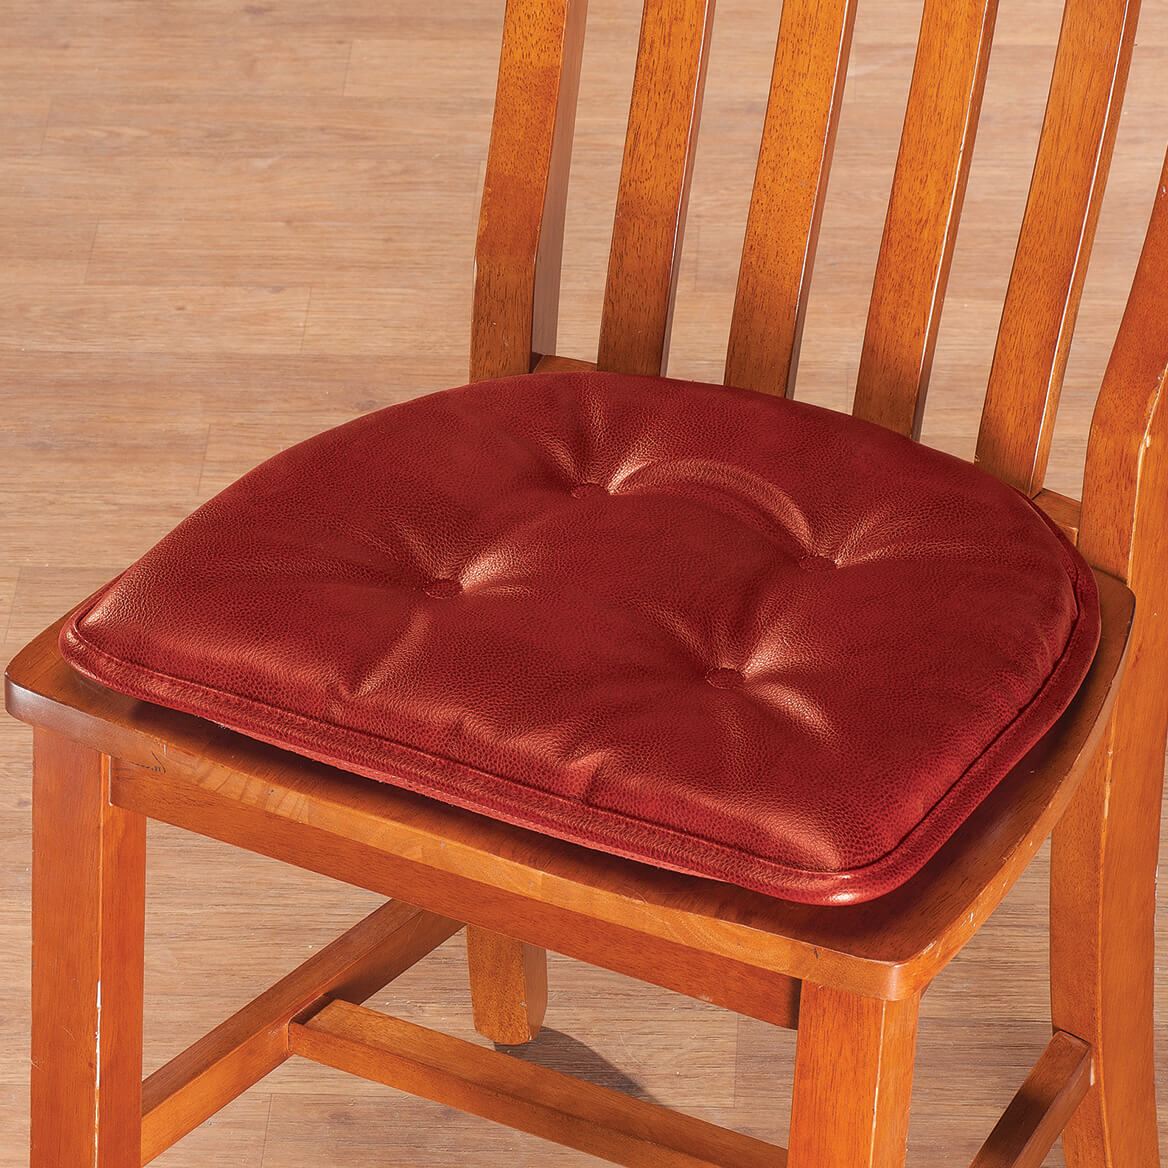 faux leather gripper chair cushions swing afterpay st germaine pad w